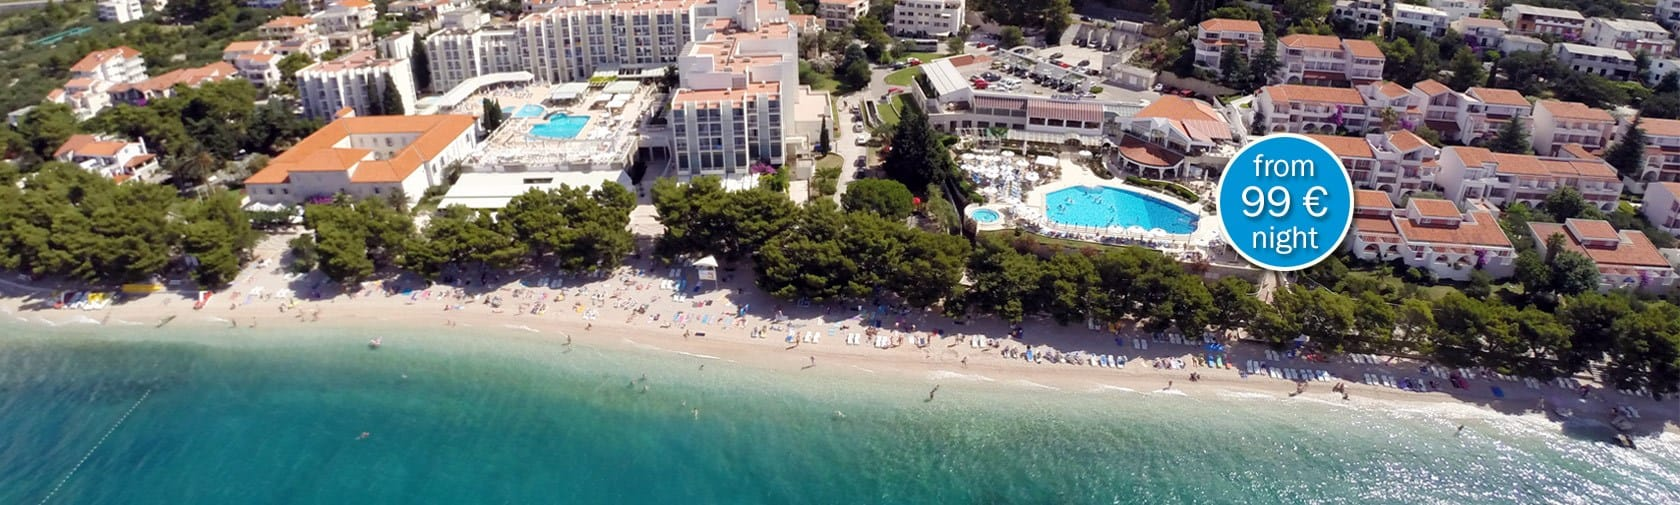 Weekends in Hotel Alga - Special 20% Discount